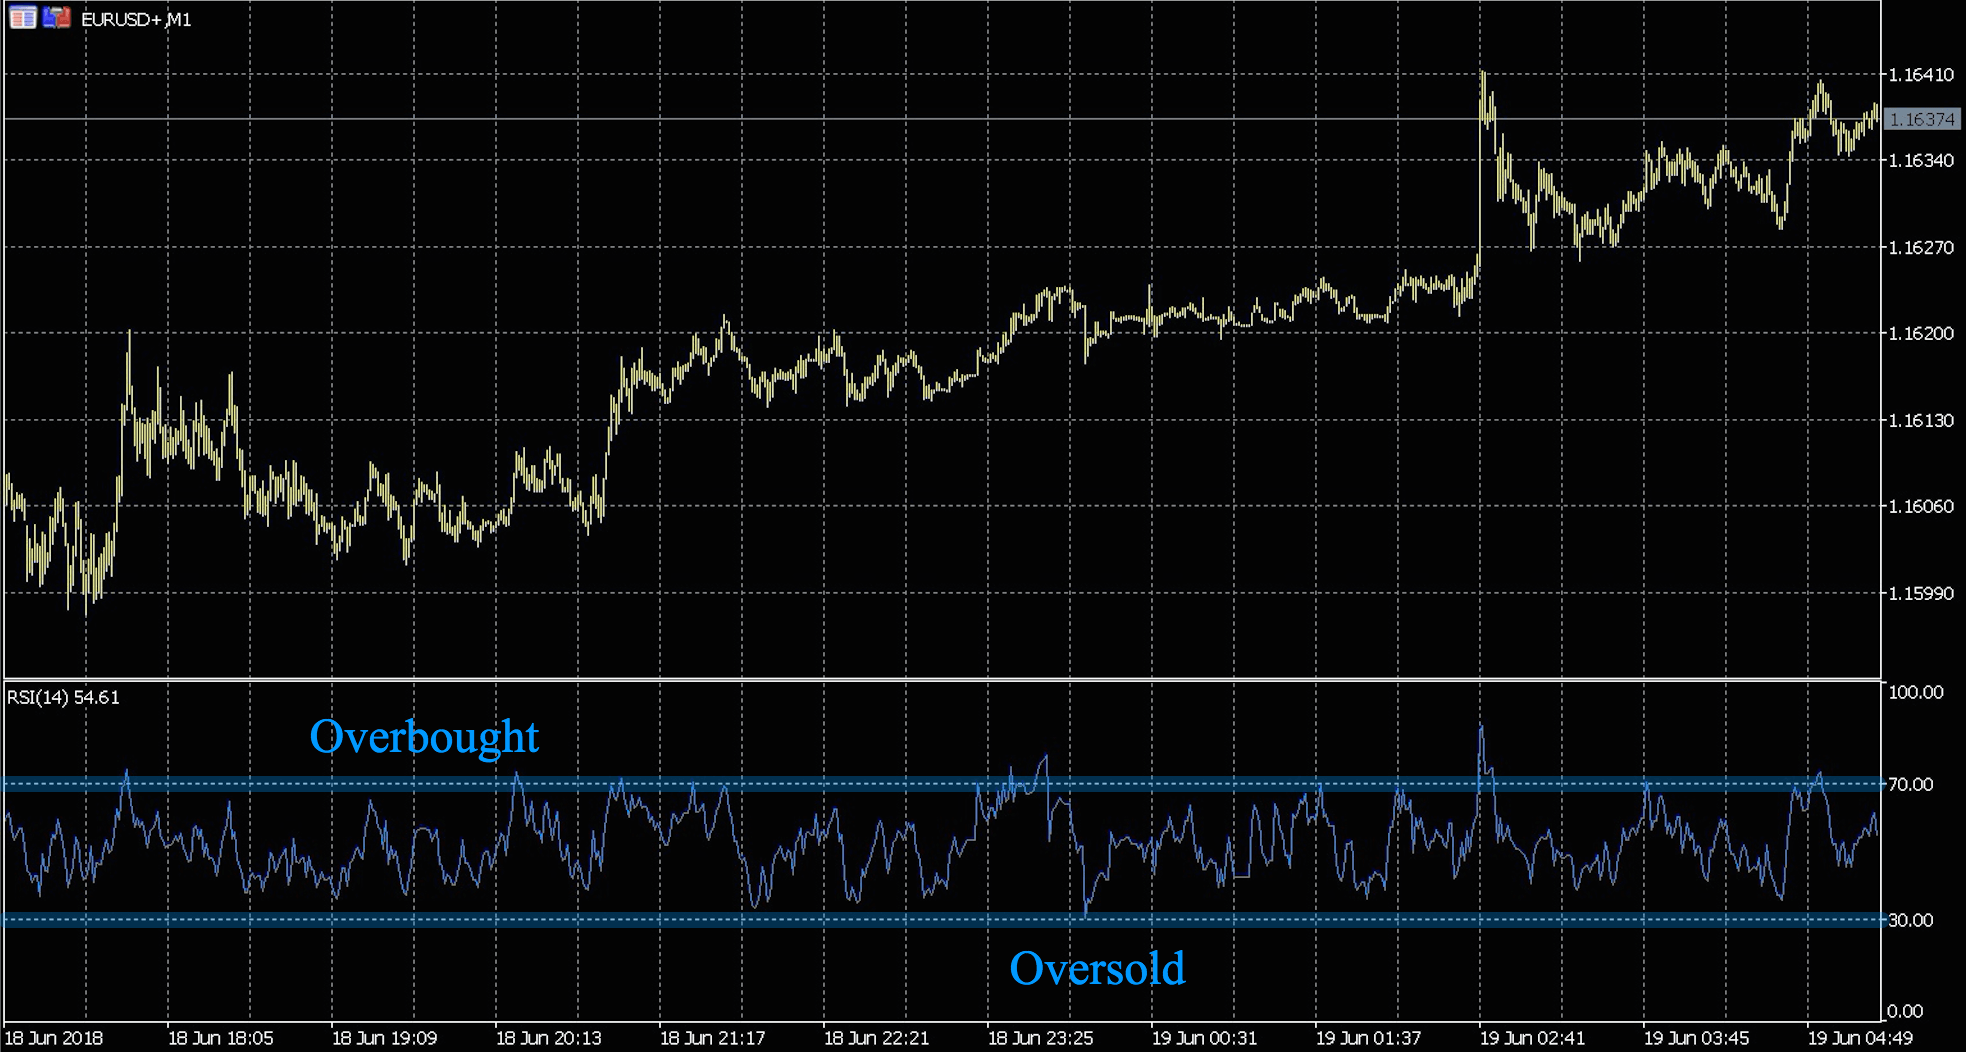 rsi-oversold-overbought